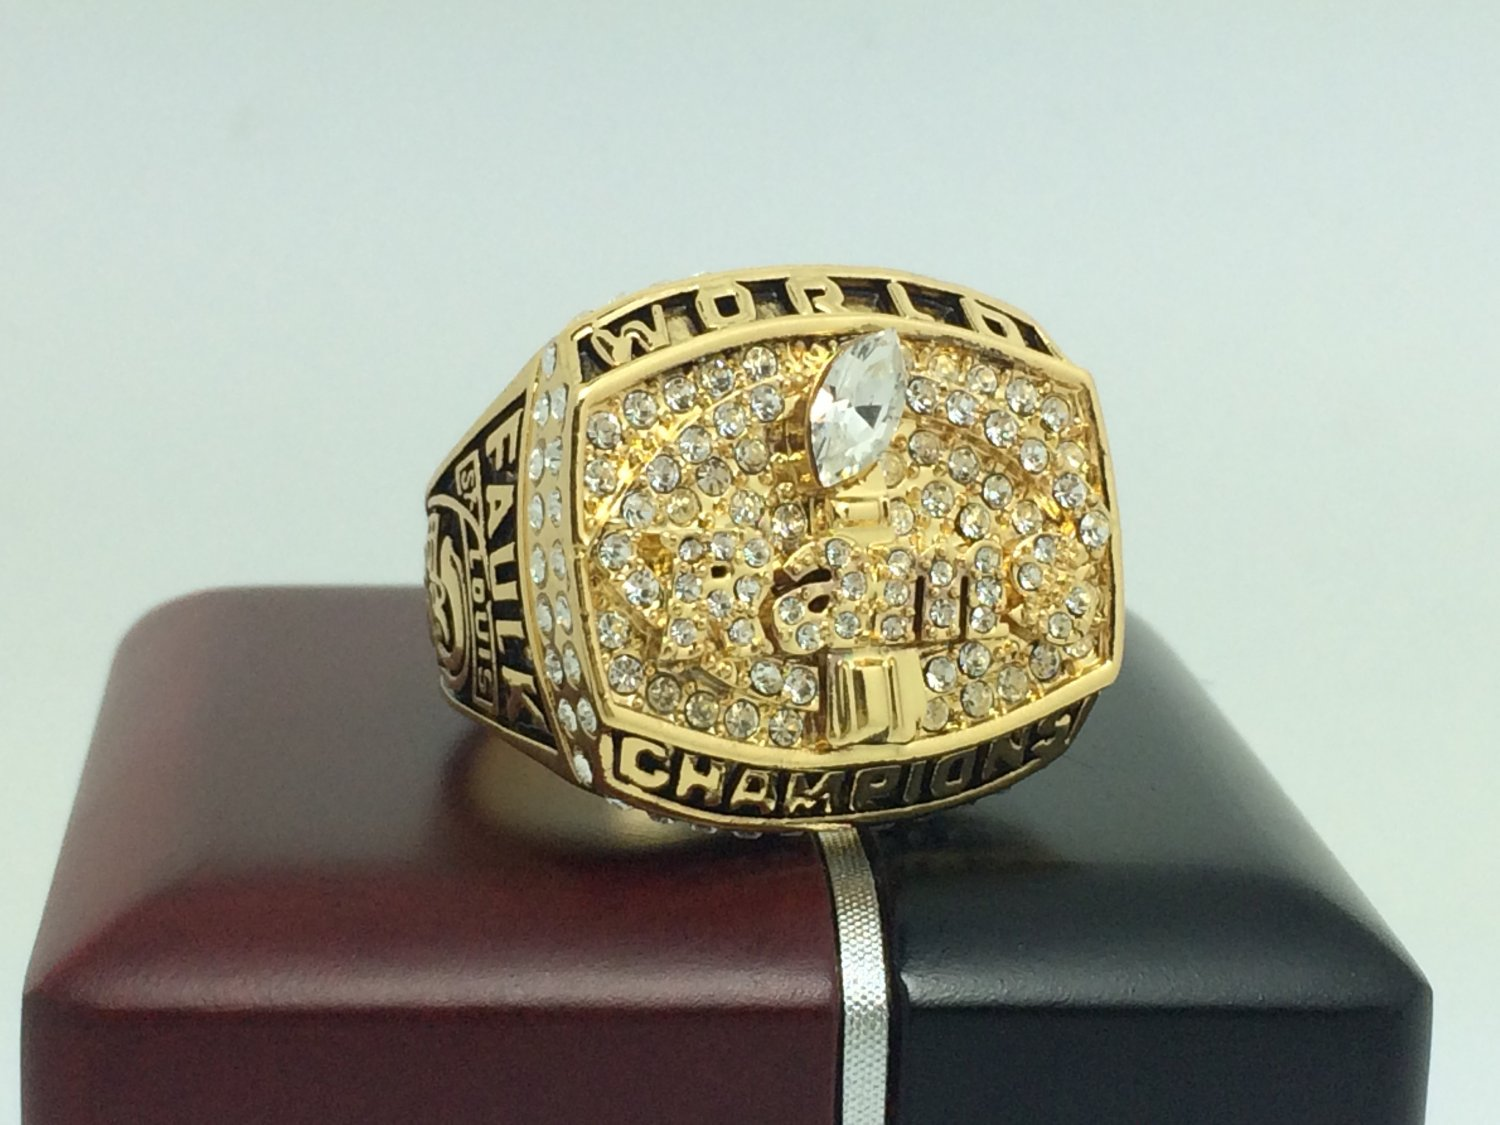 1999 St Louis Rams super bowl Championship Ring 11 Size With wooden box